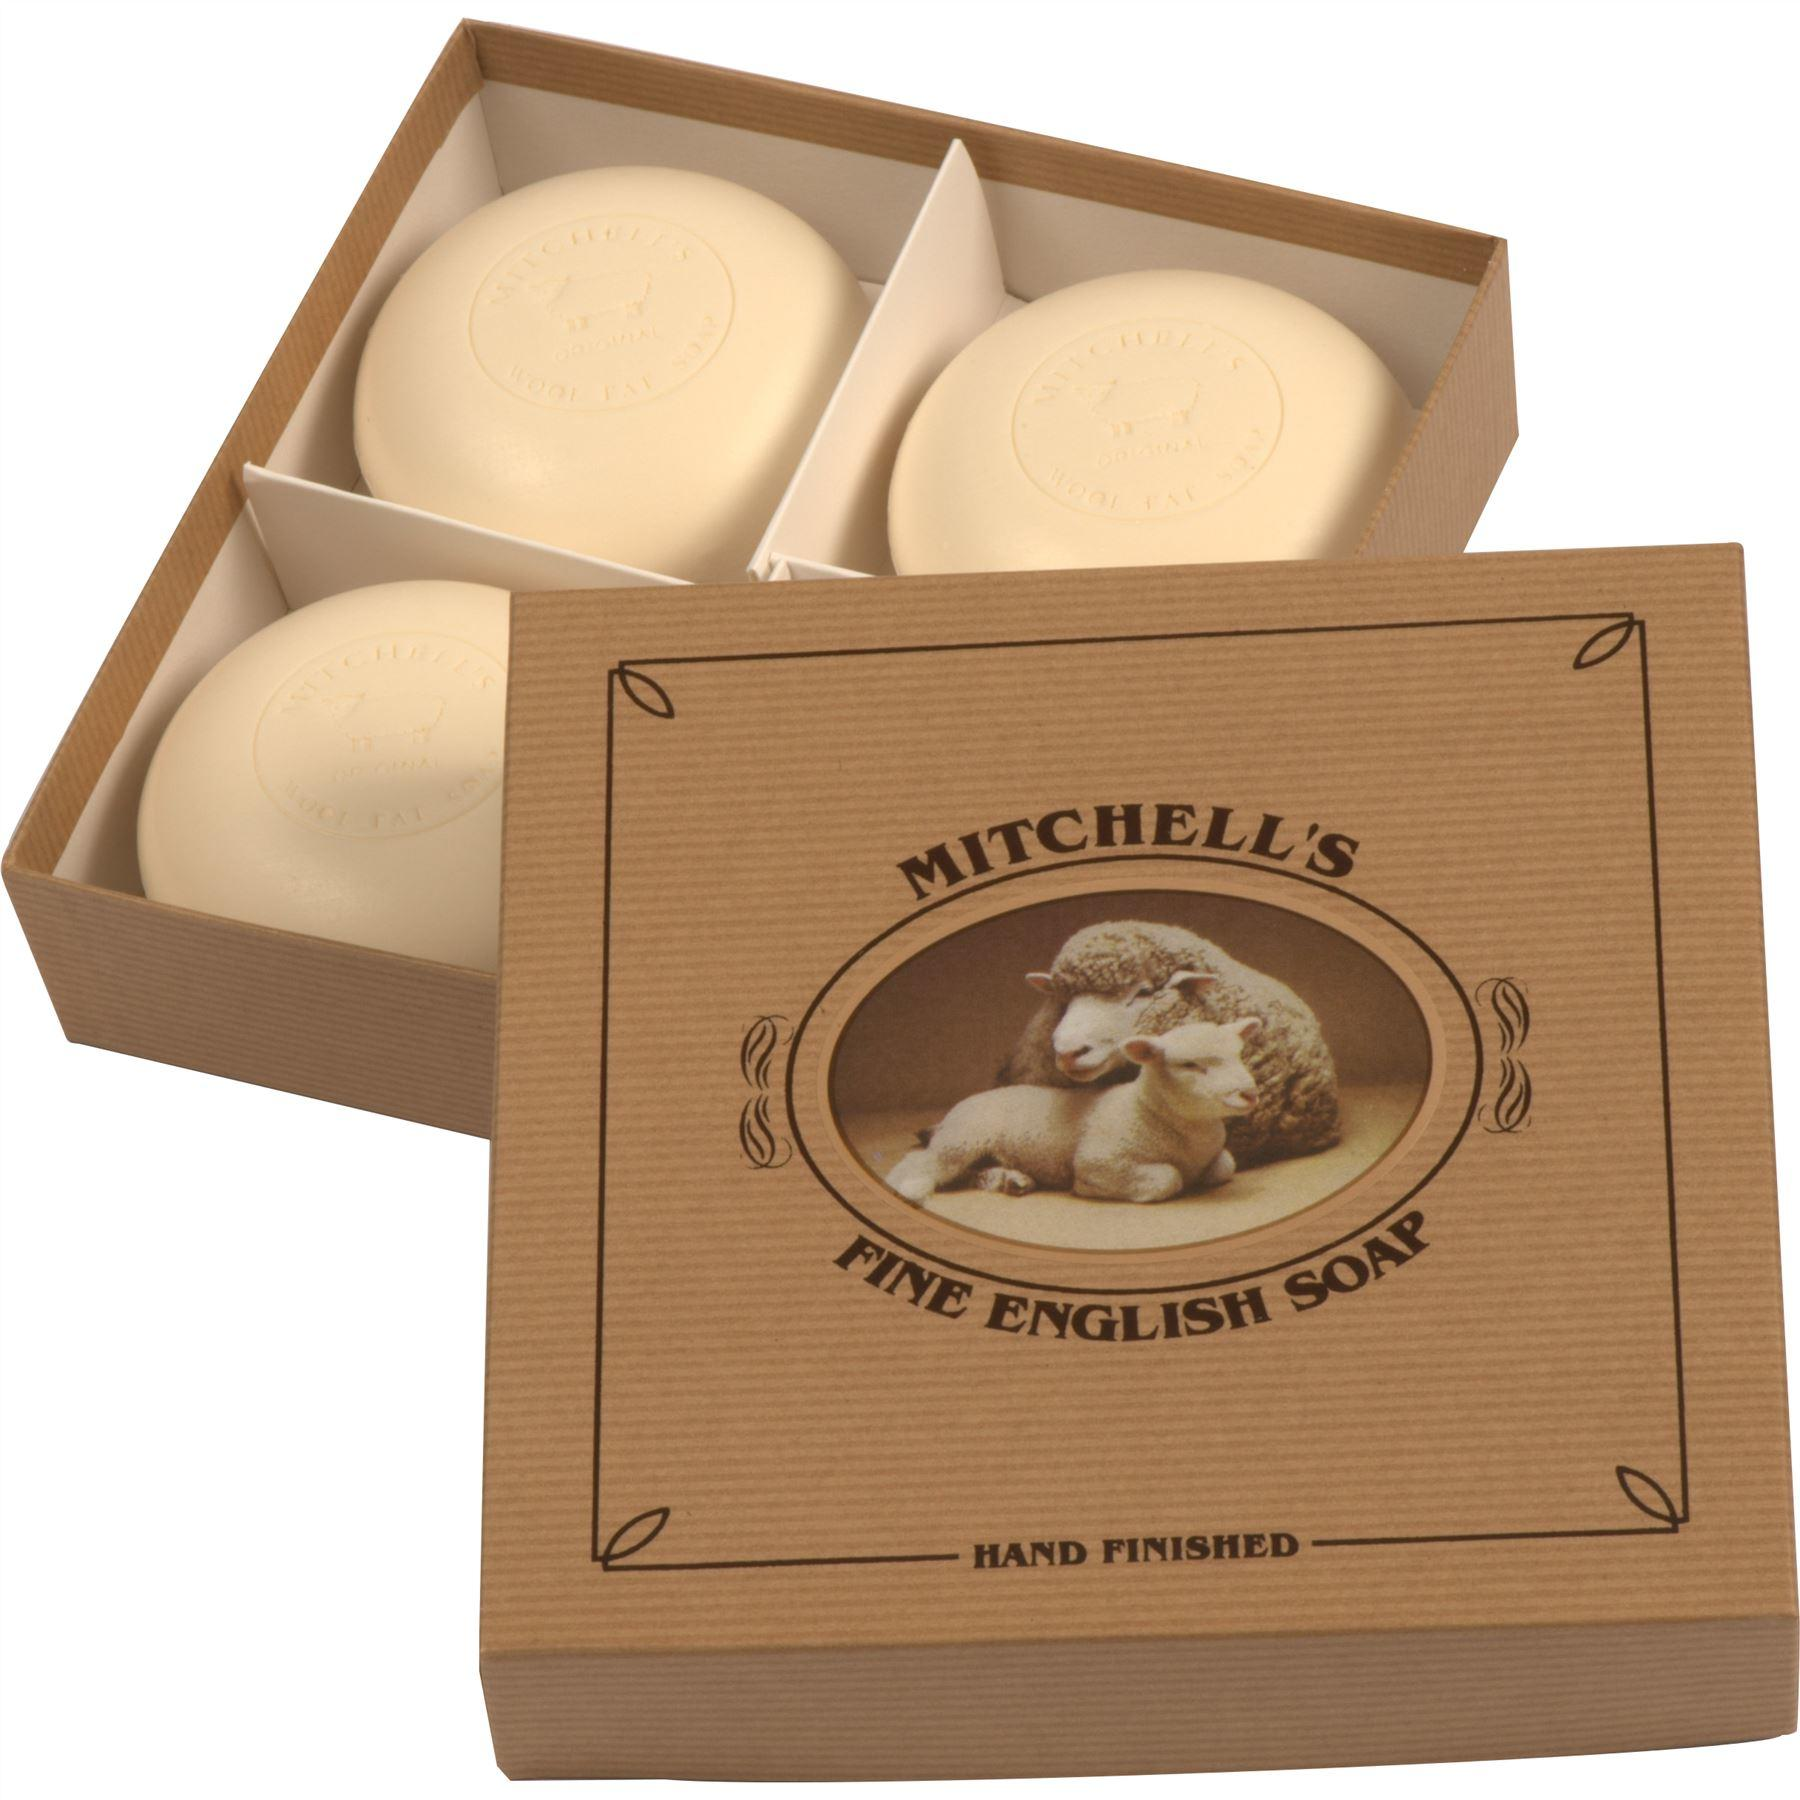 Mitchell's Wool Fat Lanolin Soap Bar Gift Set with Four Round Soap Bars in a Kraft Brown Gift Box